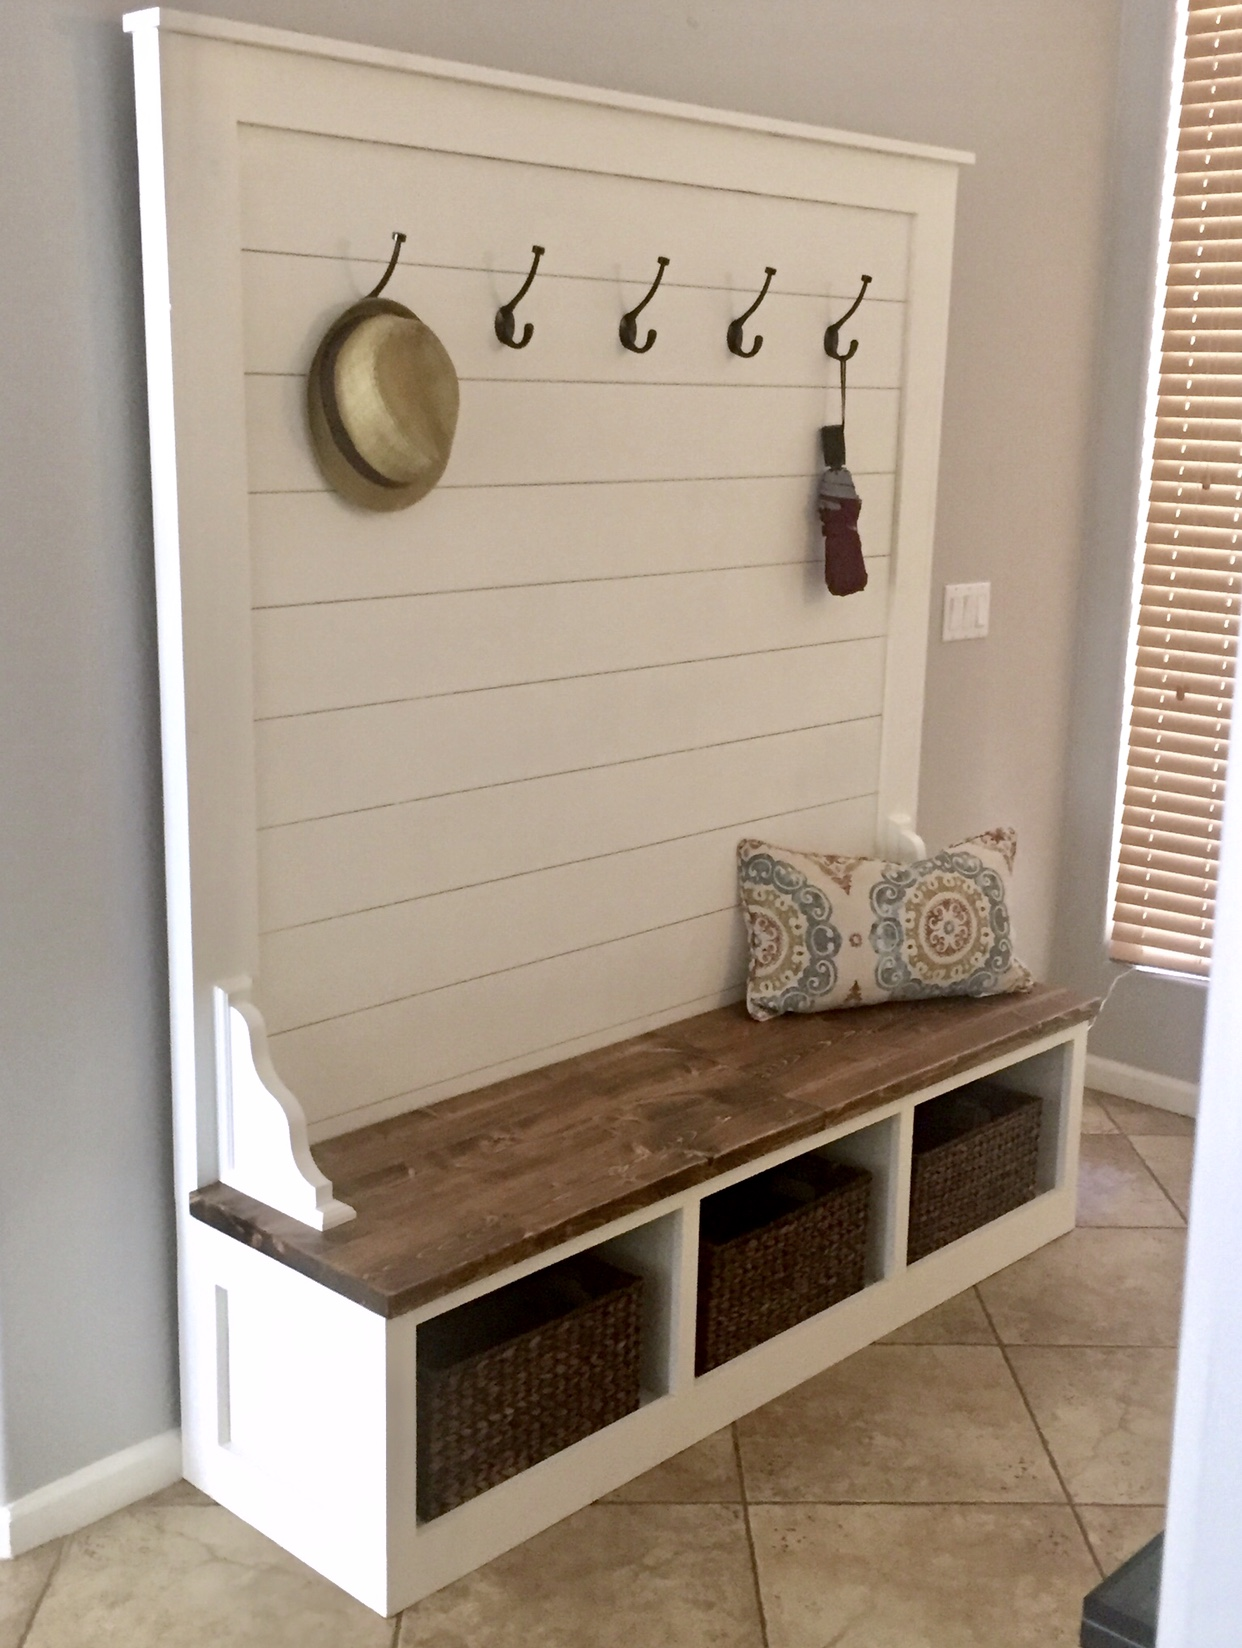 Plans To Build An Entryway Storage Bench